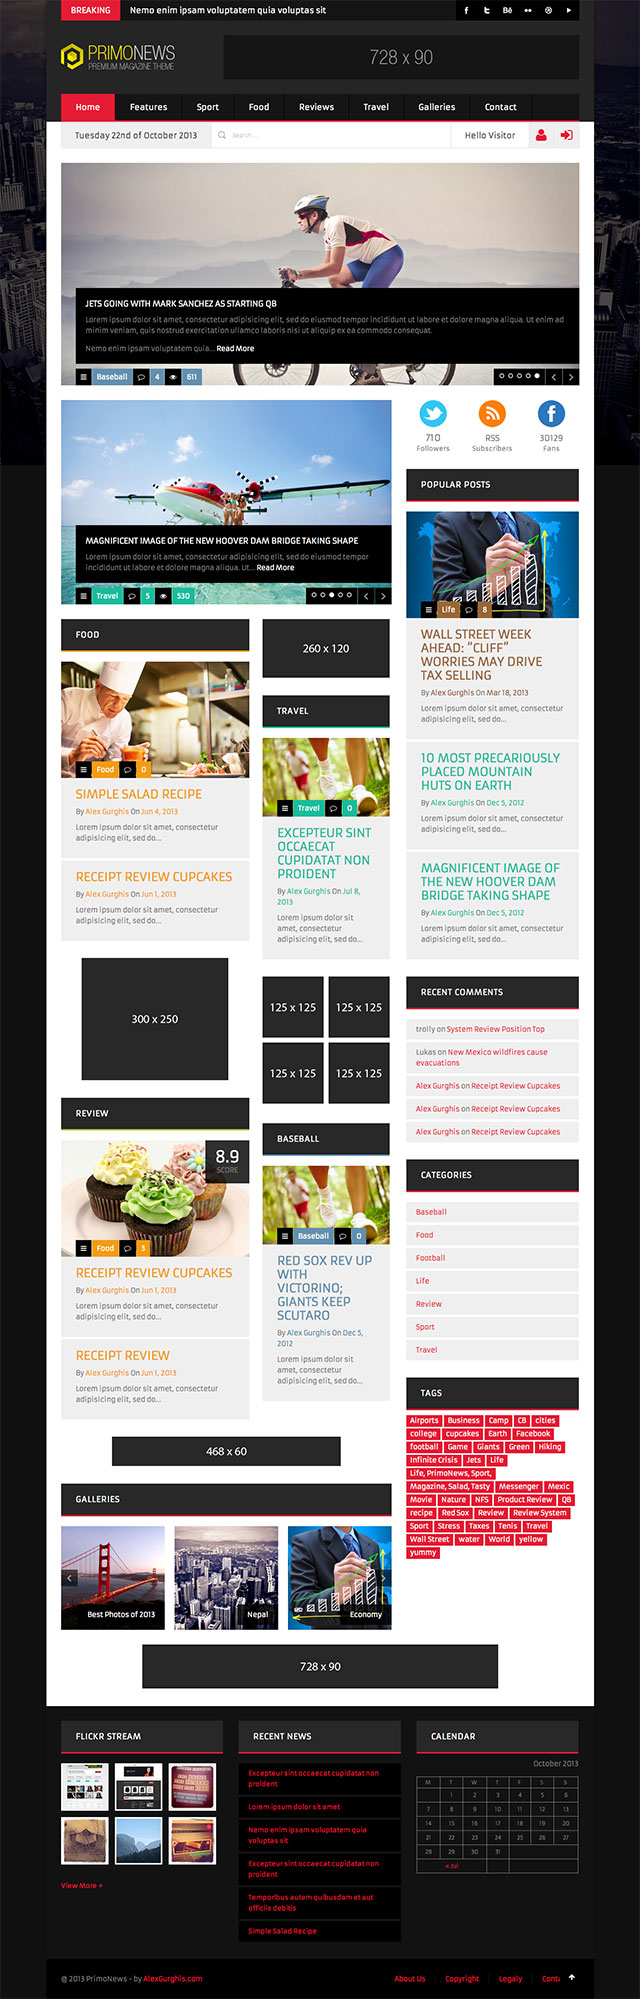 PrimoNews Best Magazine WordPress Themes